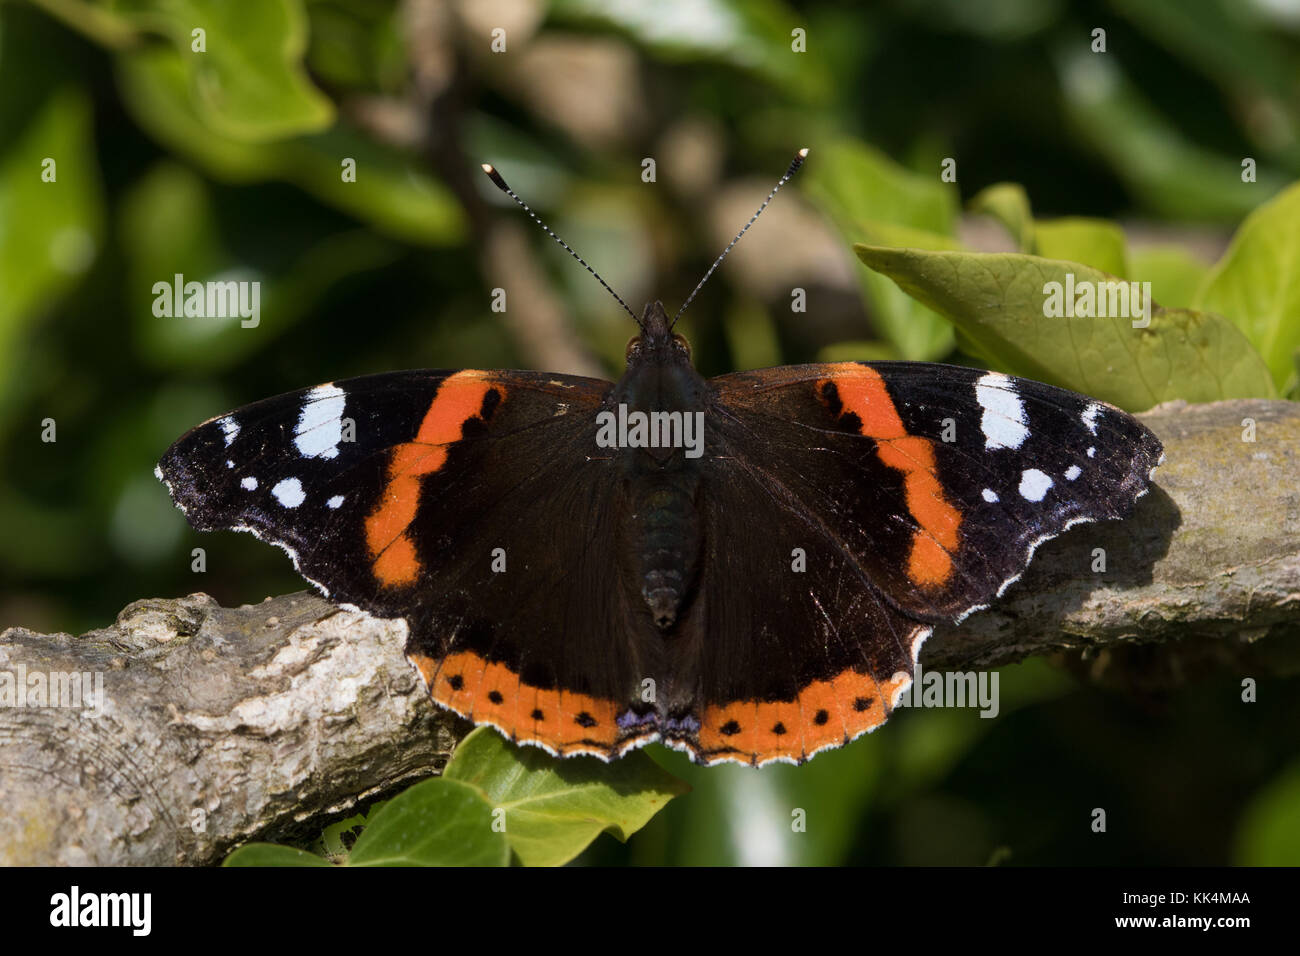 Red Admiral (Vanessa atalanta) butterfly resting on a branch - Stock Image